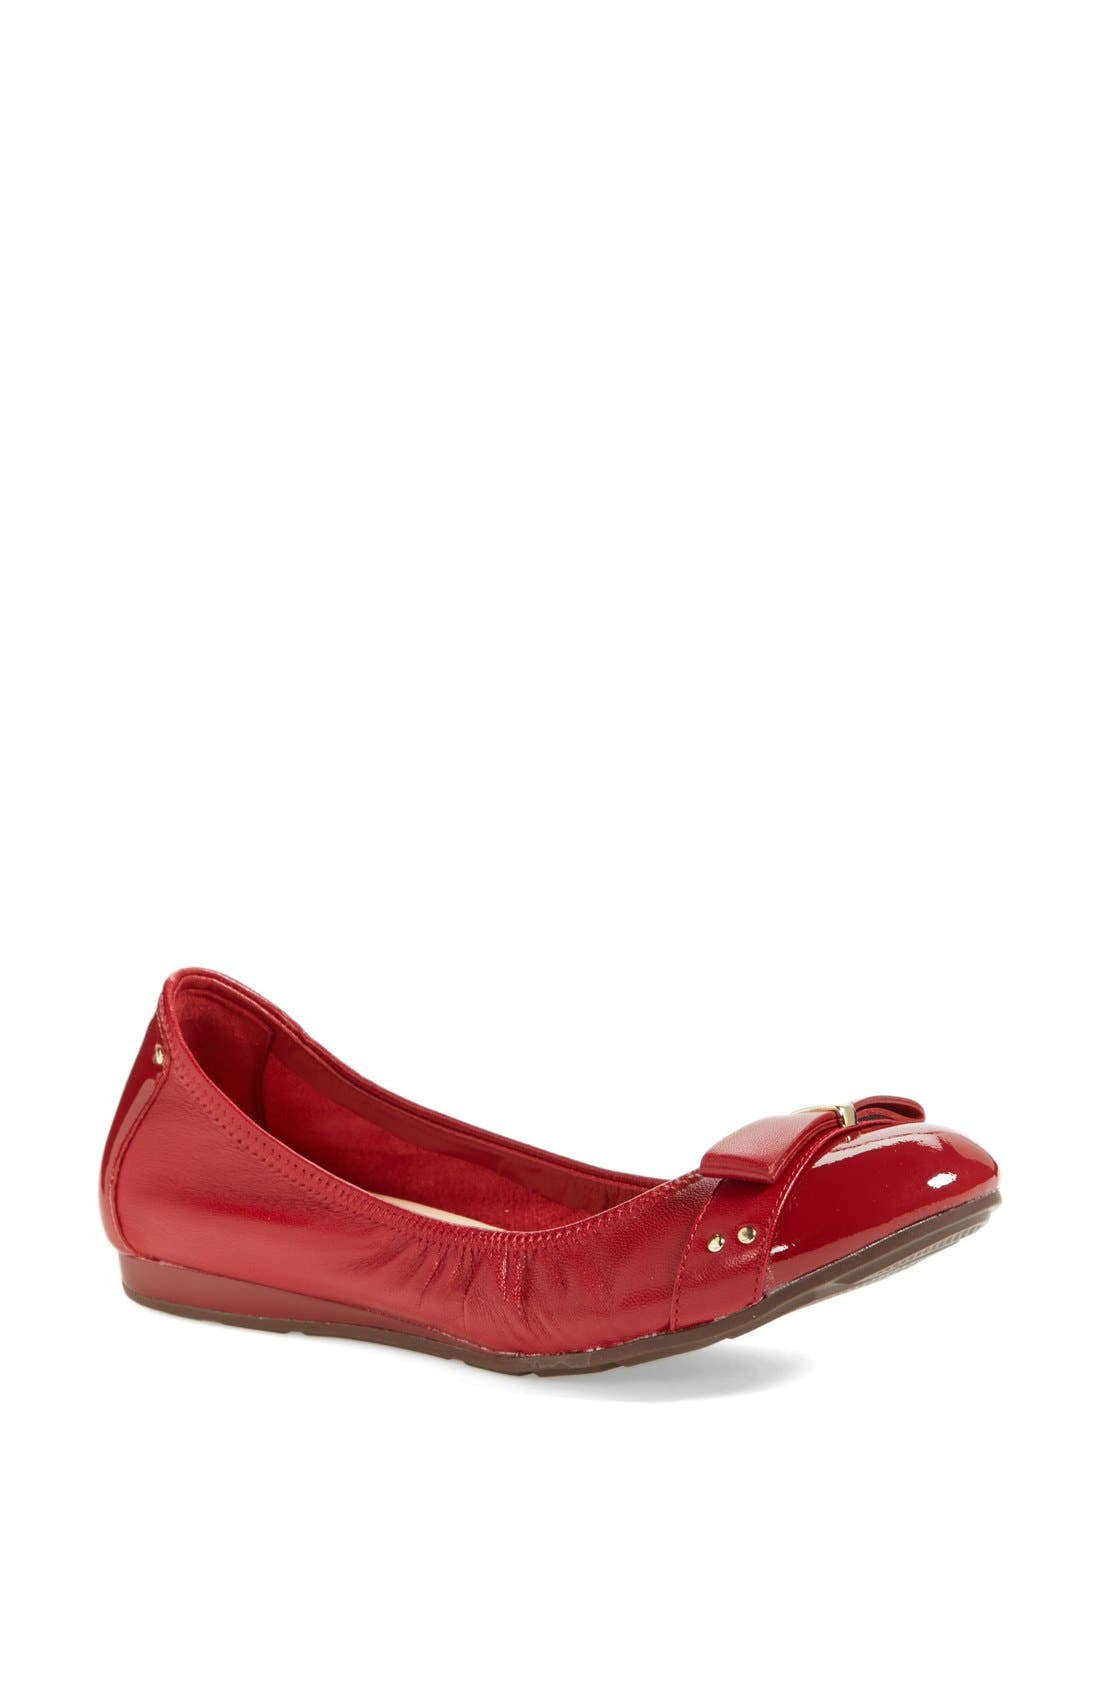 Main Image - Cole Haan 'Air Monica' Ballet Flat